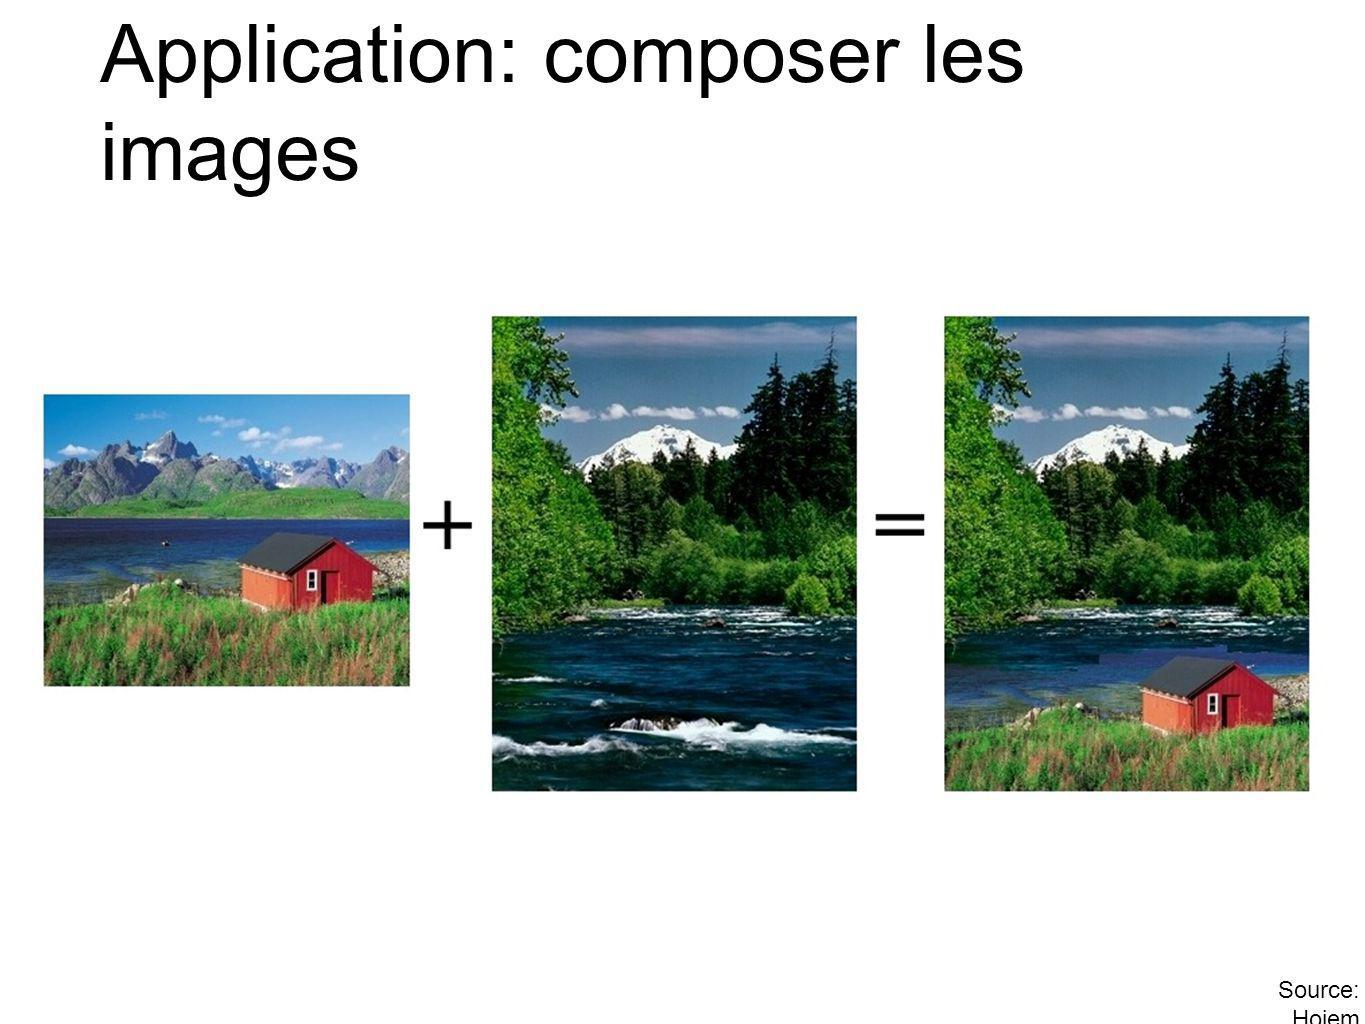 Application: composer les images